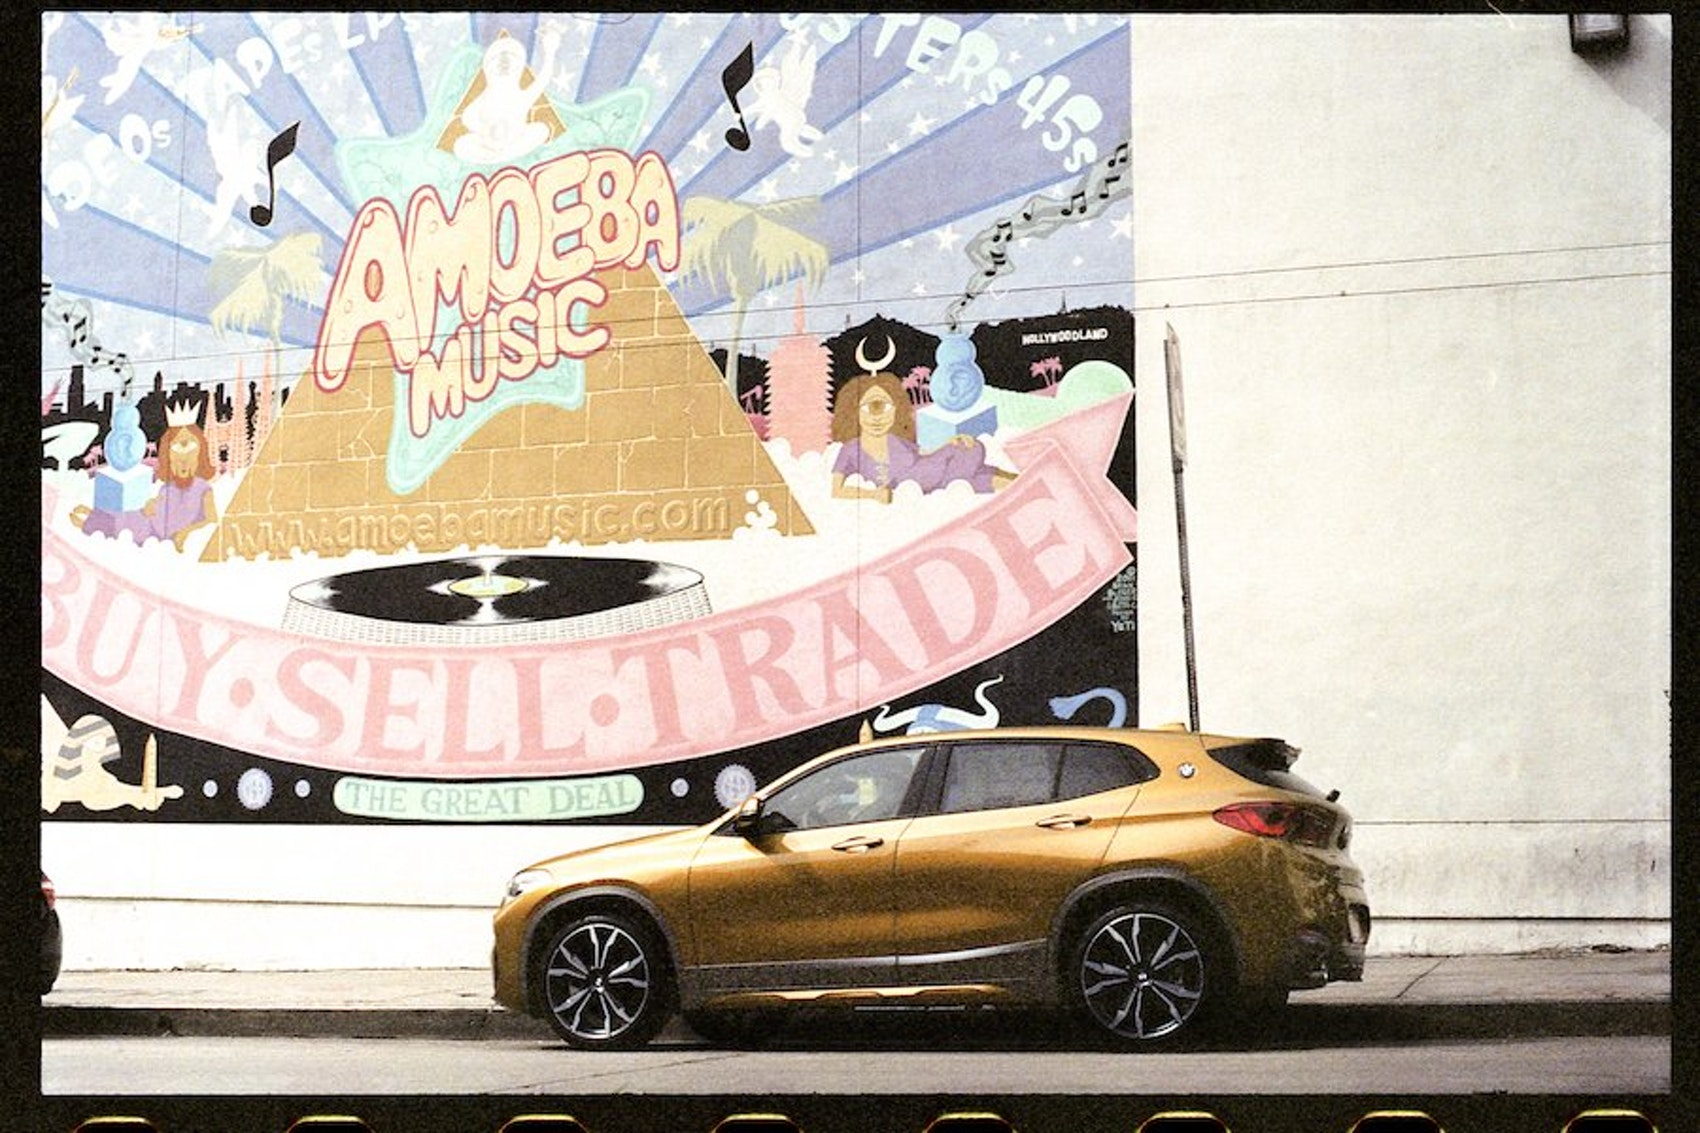 The first-ever BMW X2 pictured in front of the legendary Amoeba Records.